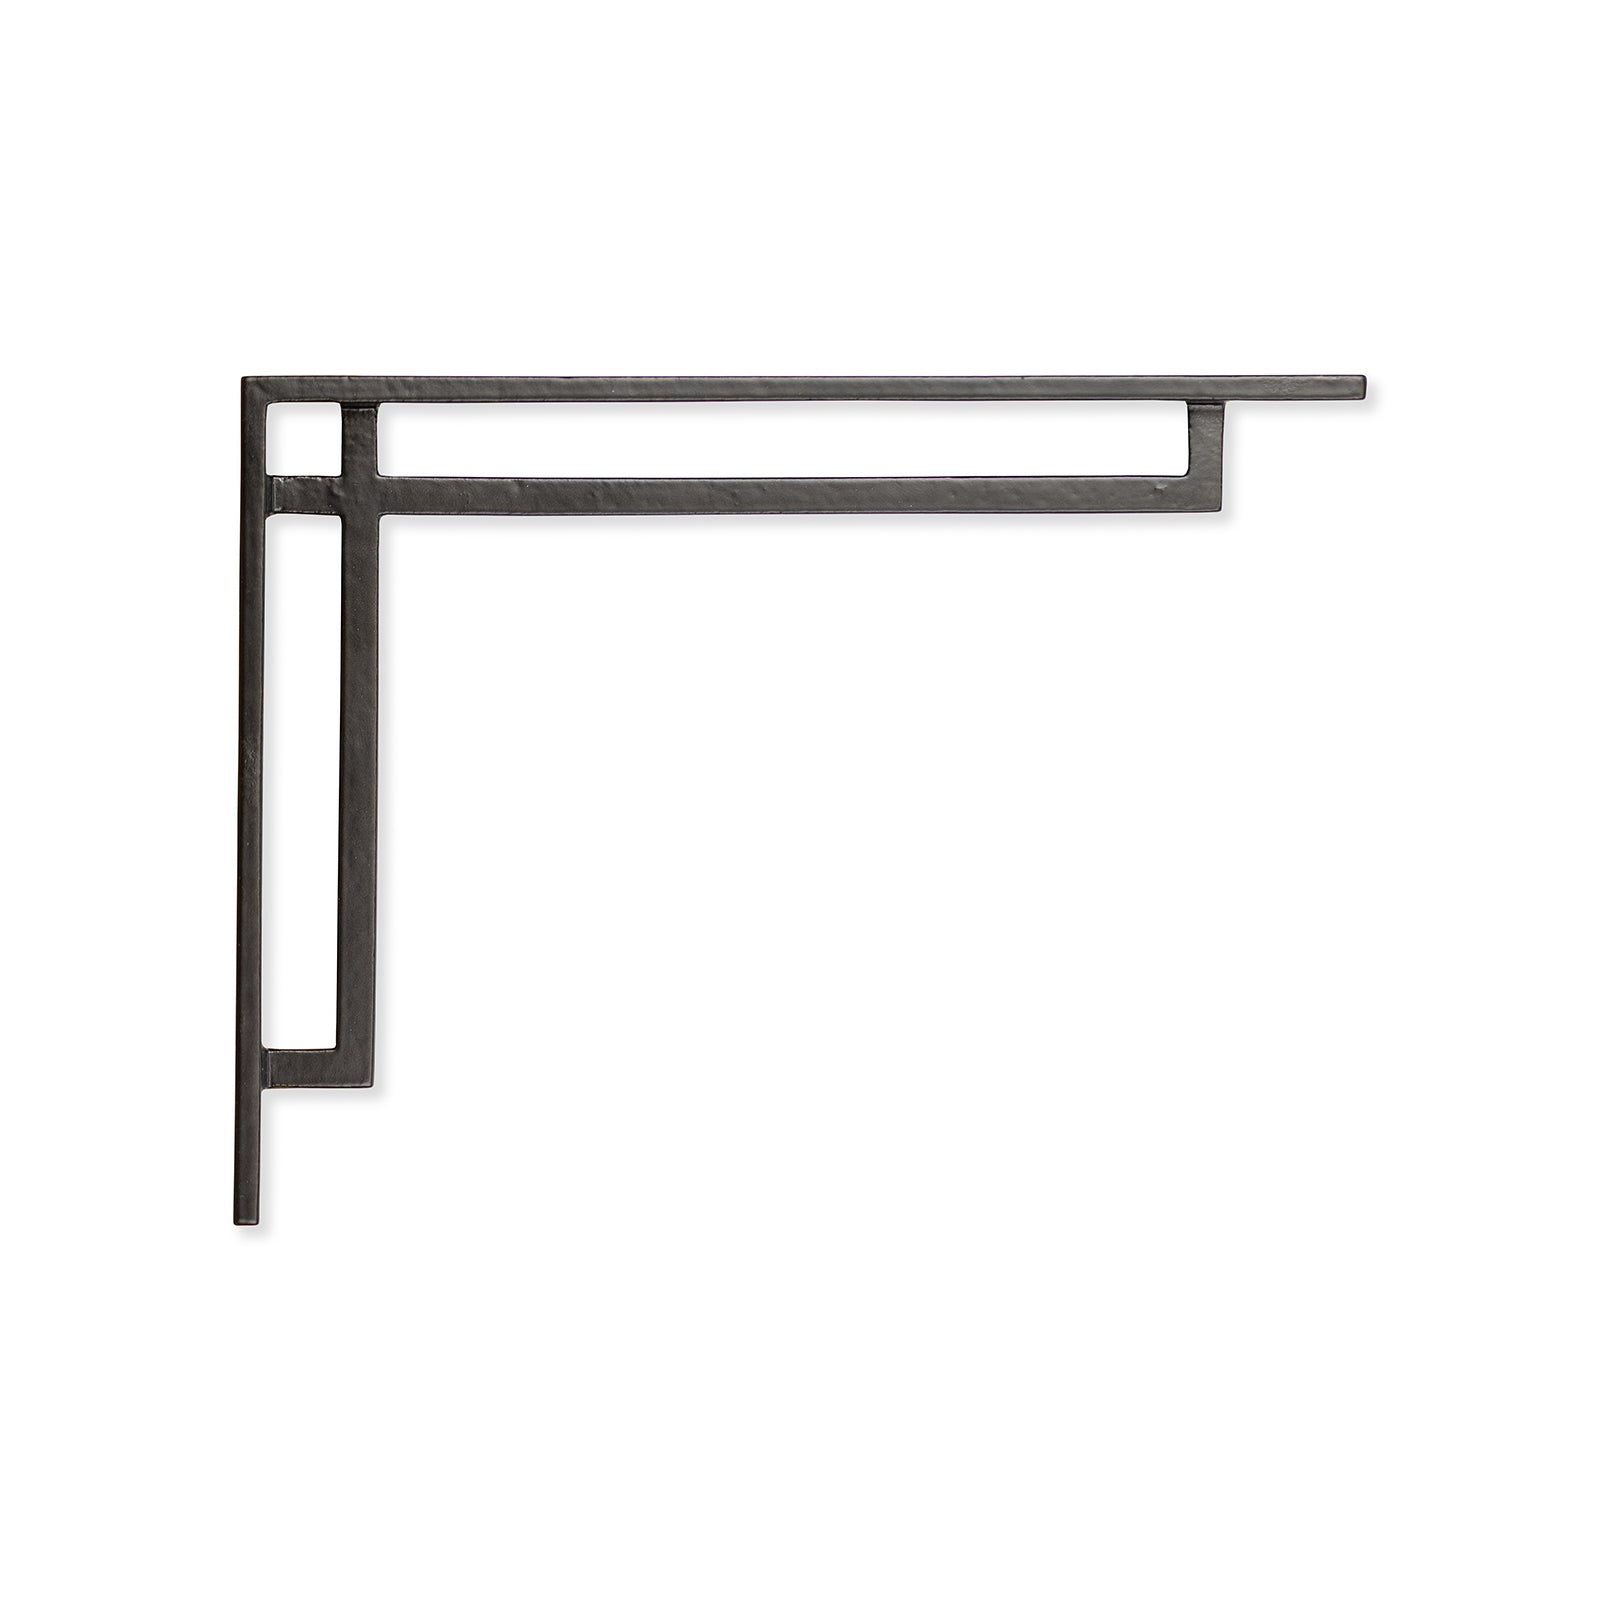 Art Deco Narrow Shelf Bracket Black